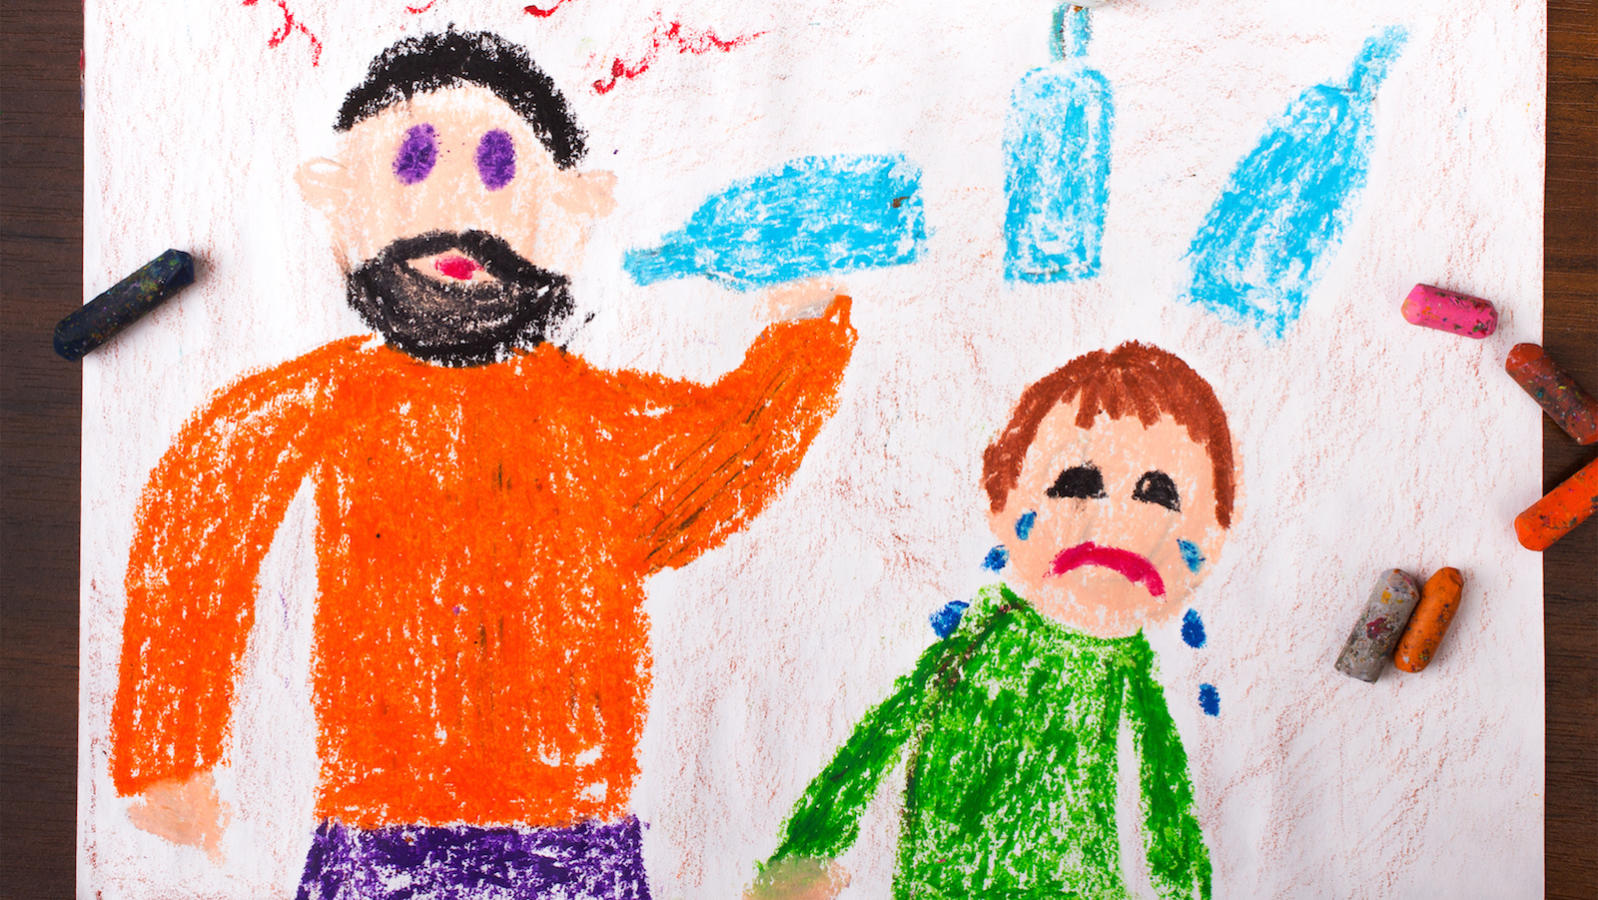 The guilt carried by children of alcoholics